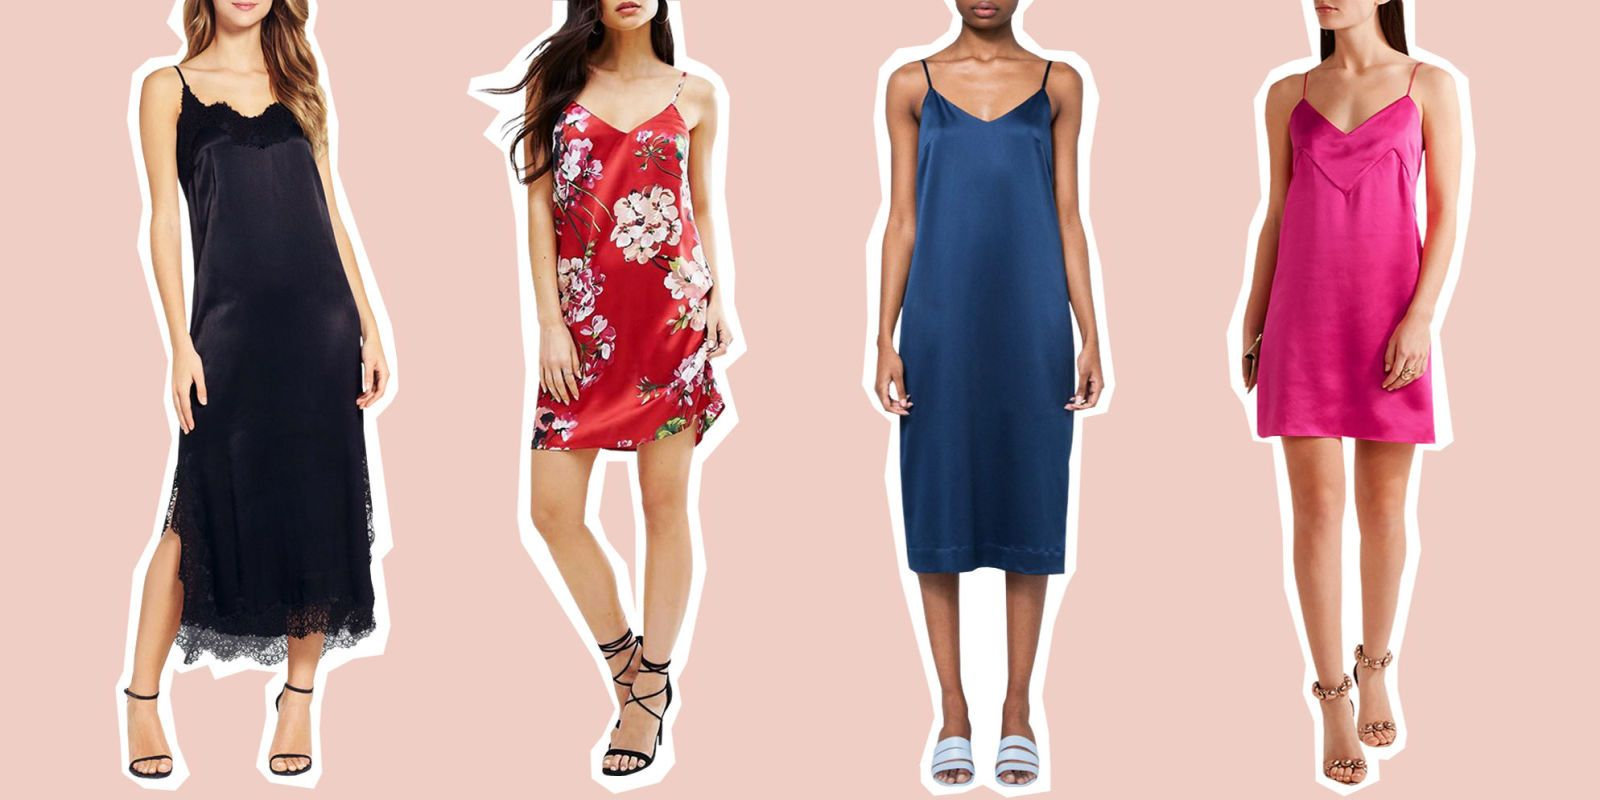 When it comes to '90s fashion, the slip dress was the ultimate icon. Now  it's making a comeback for 2017! Revive the slinky look with these modern  ...